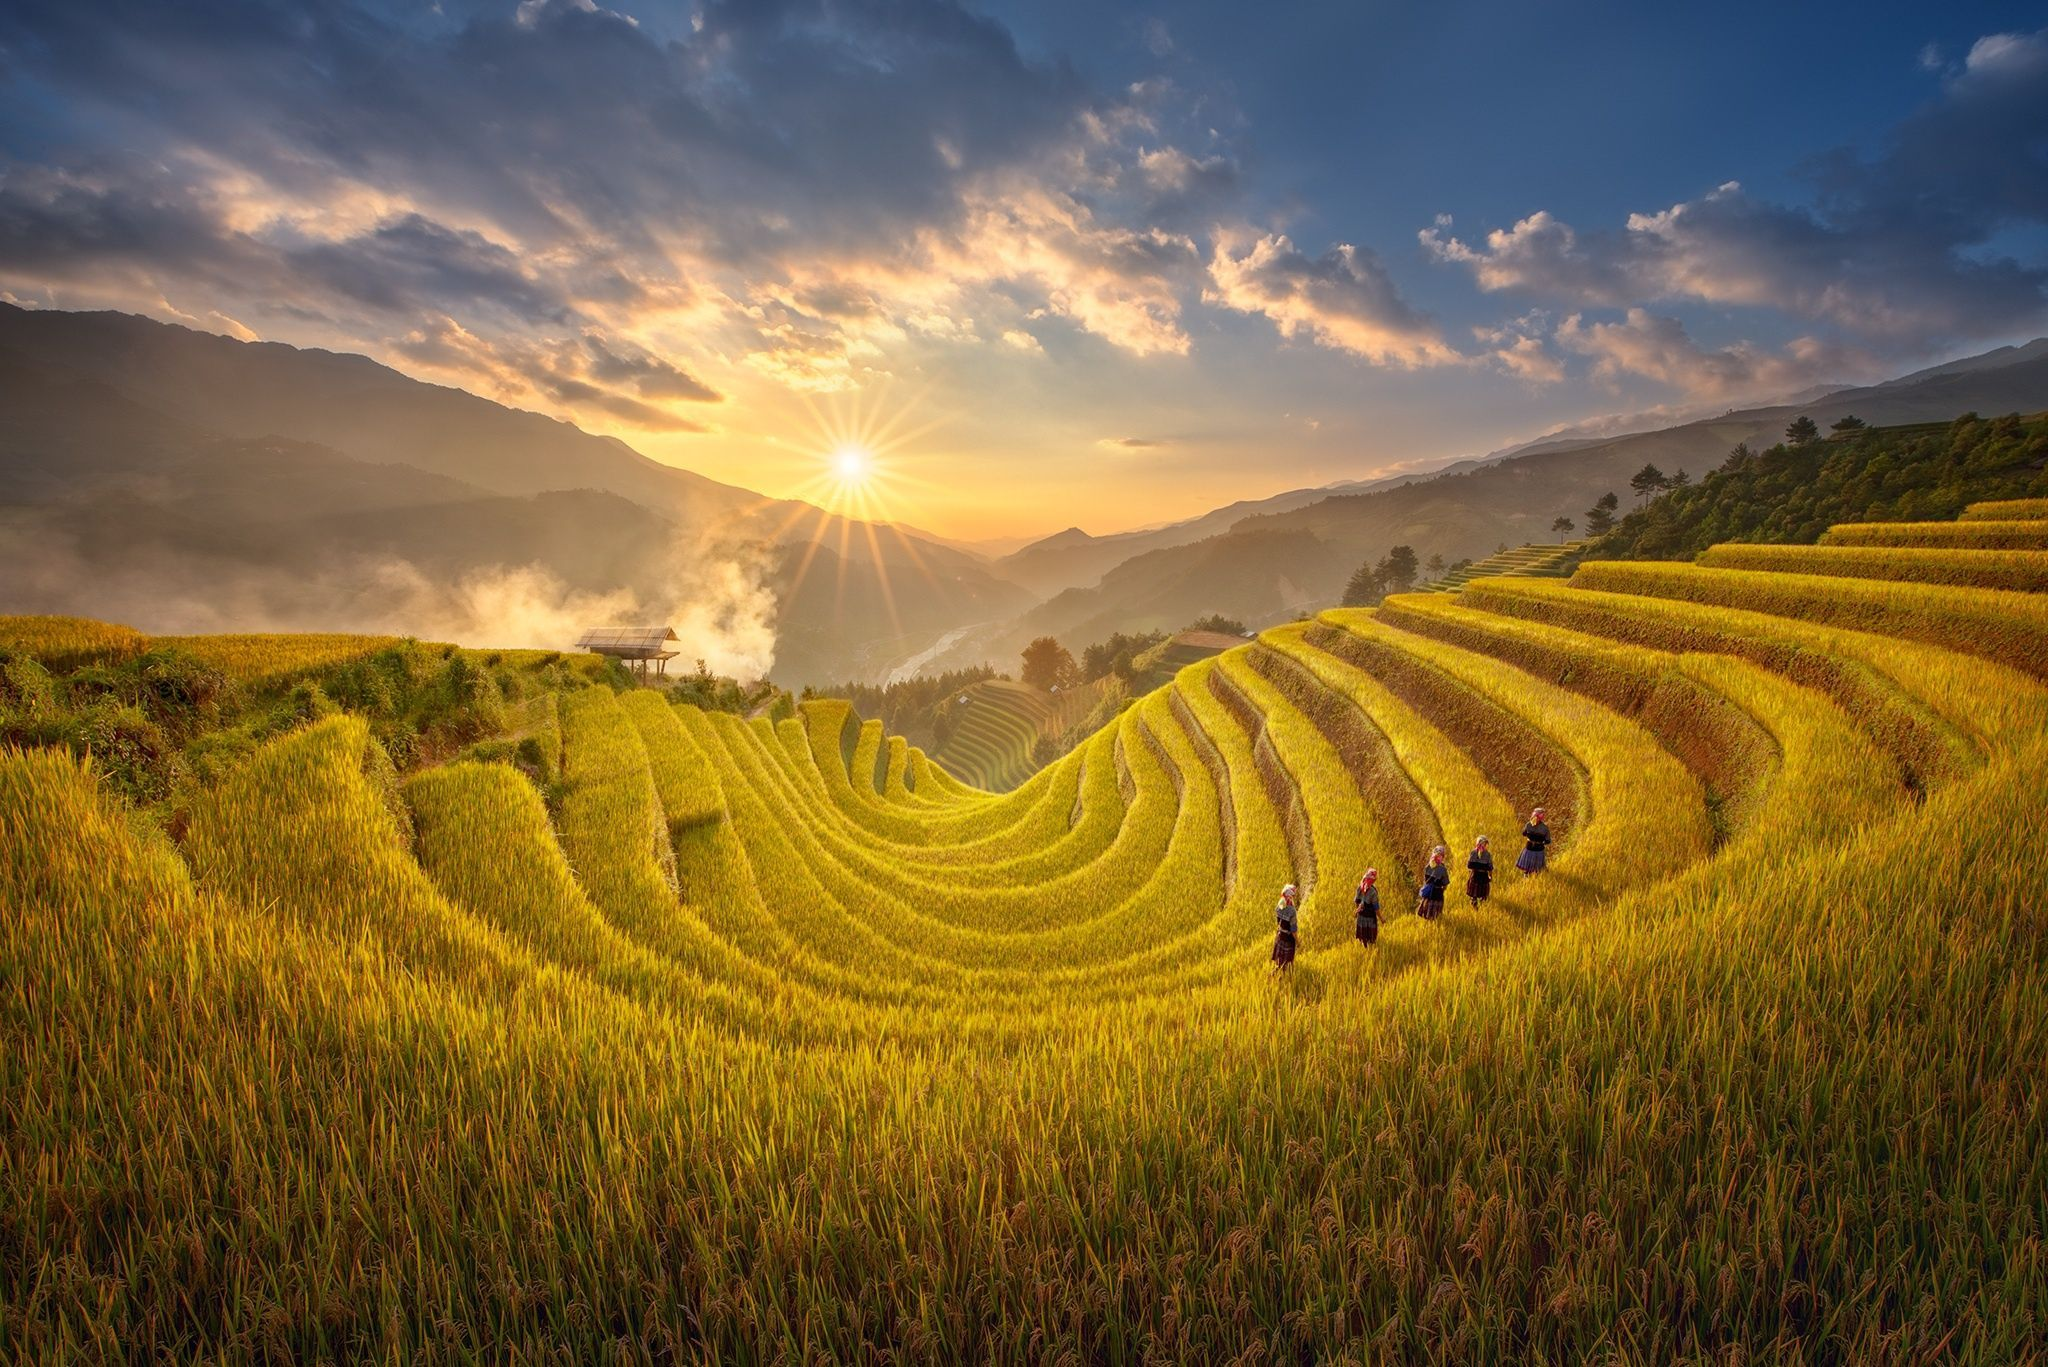 Mu Cang Chai terraced fields - one of the 50 most beautiful destinations in the world